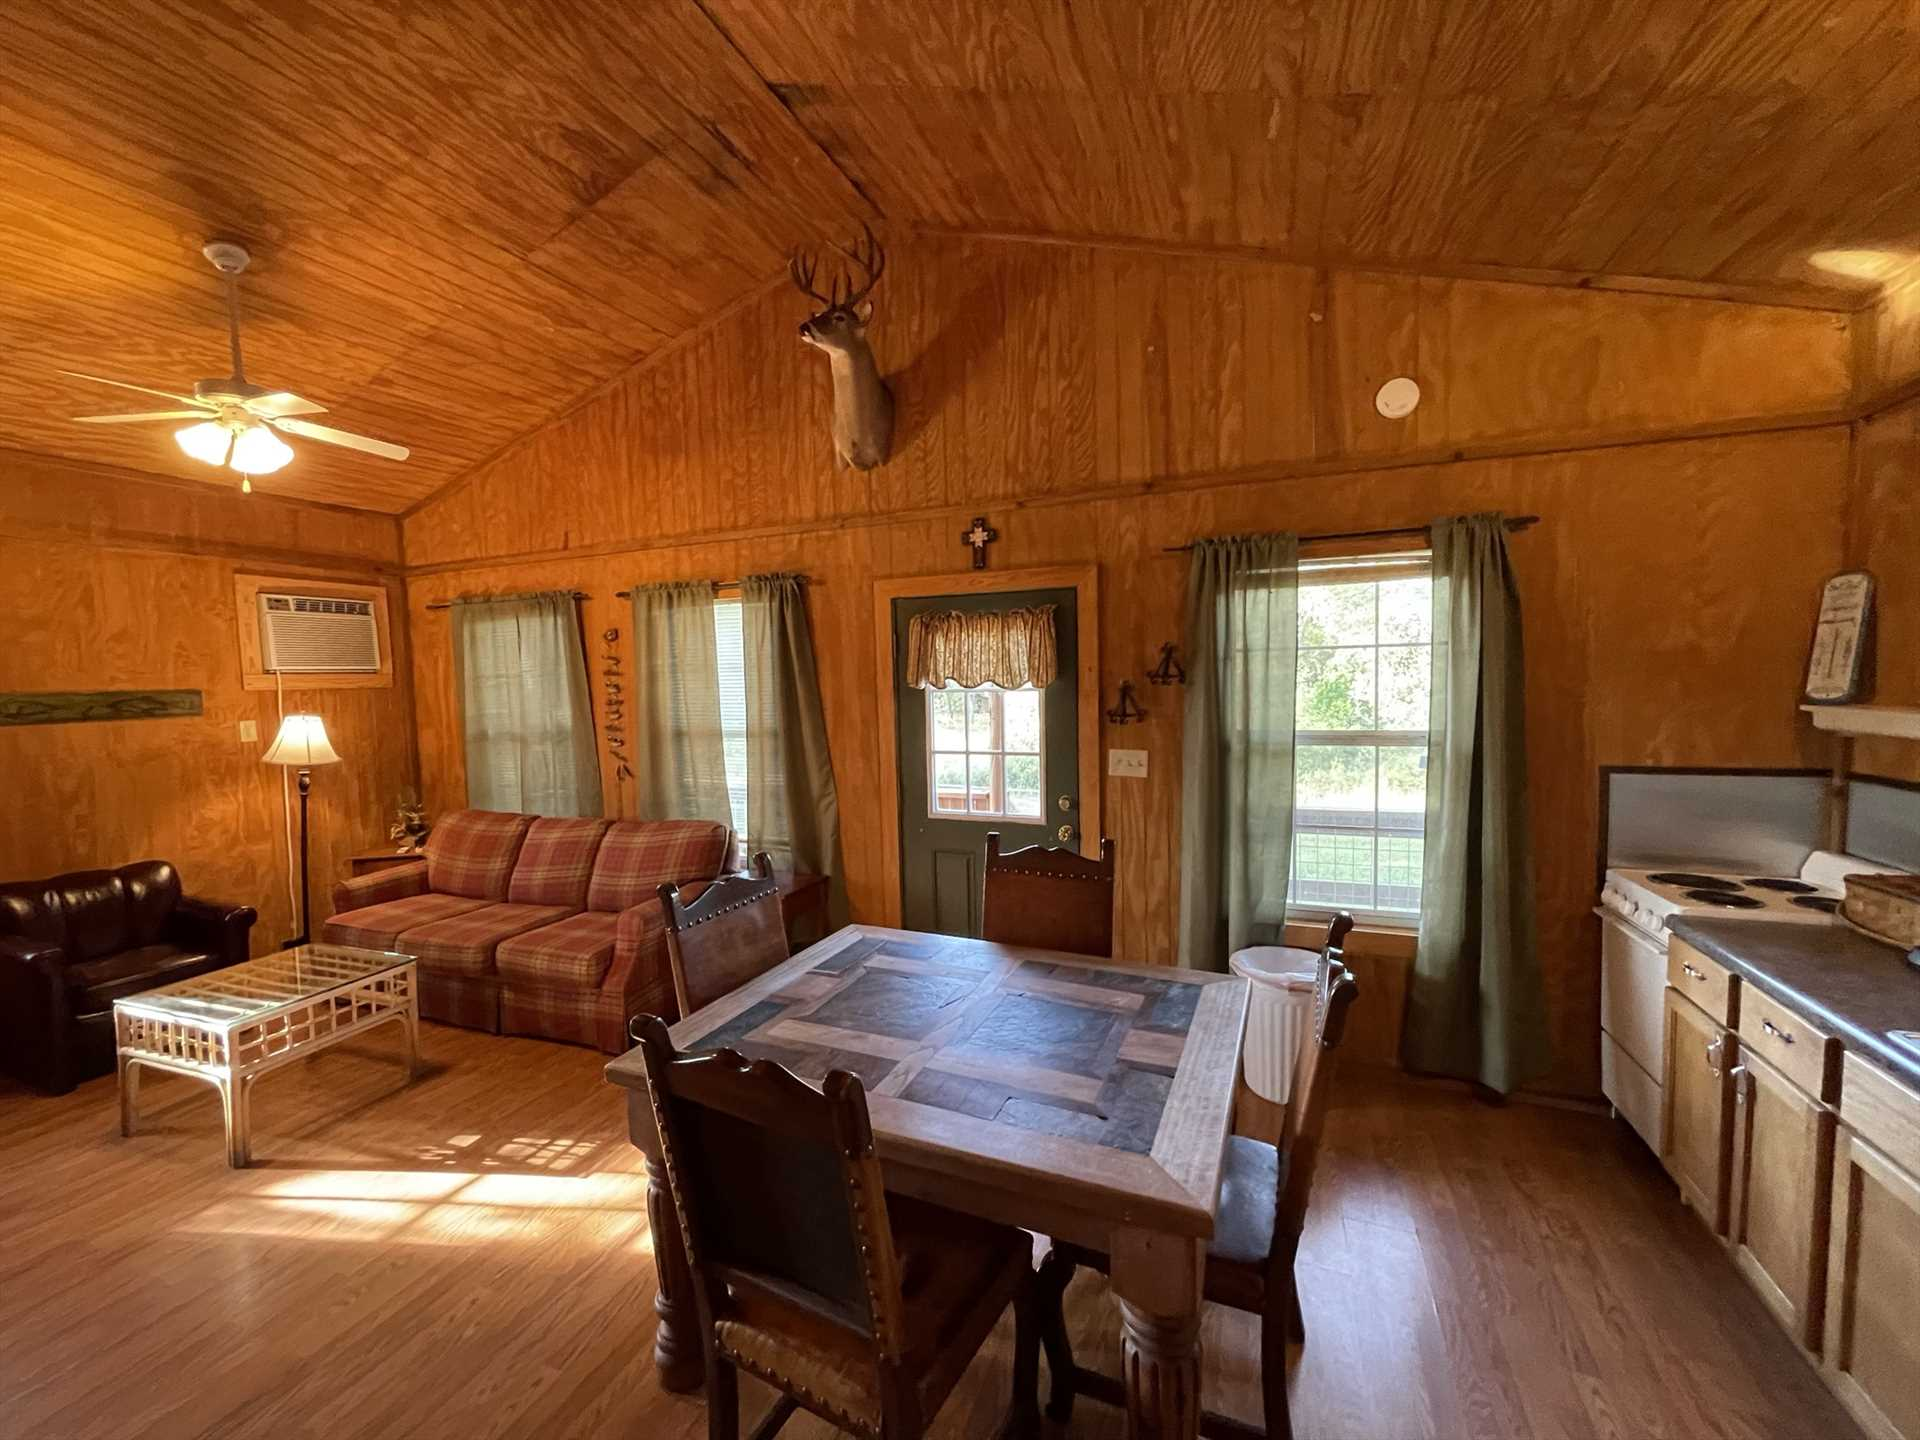 The main area of the Gone Fishin' cabin includes a full kitchen, dining table, and living space, all in a rustic and fun setting!